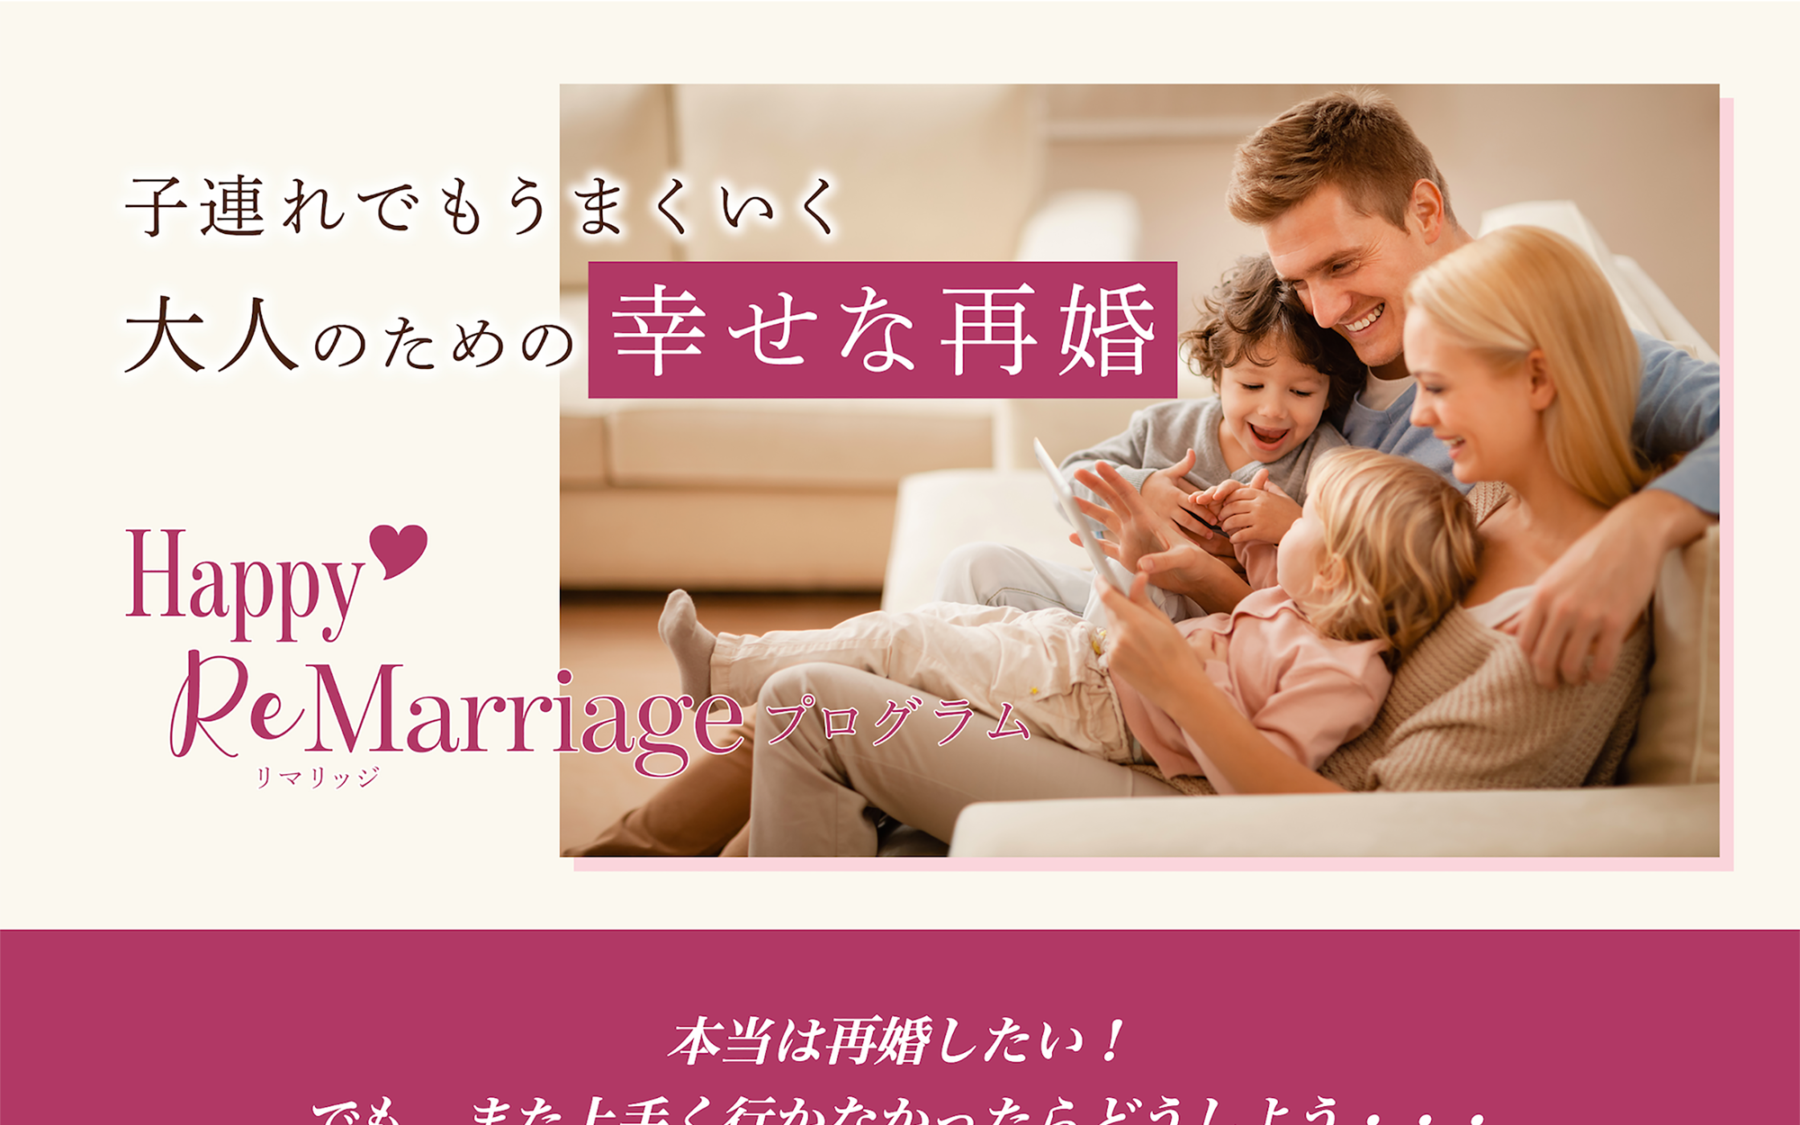 lp-gracebridal-happy-remarriage-program-2